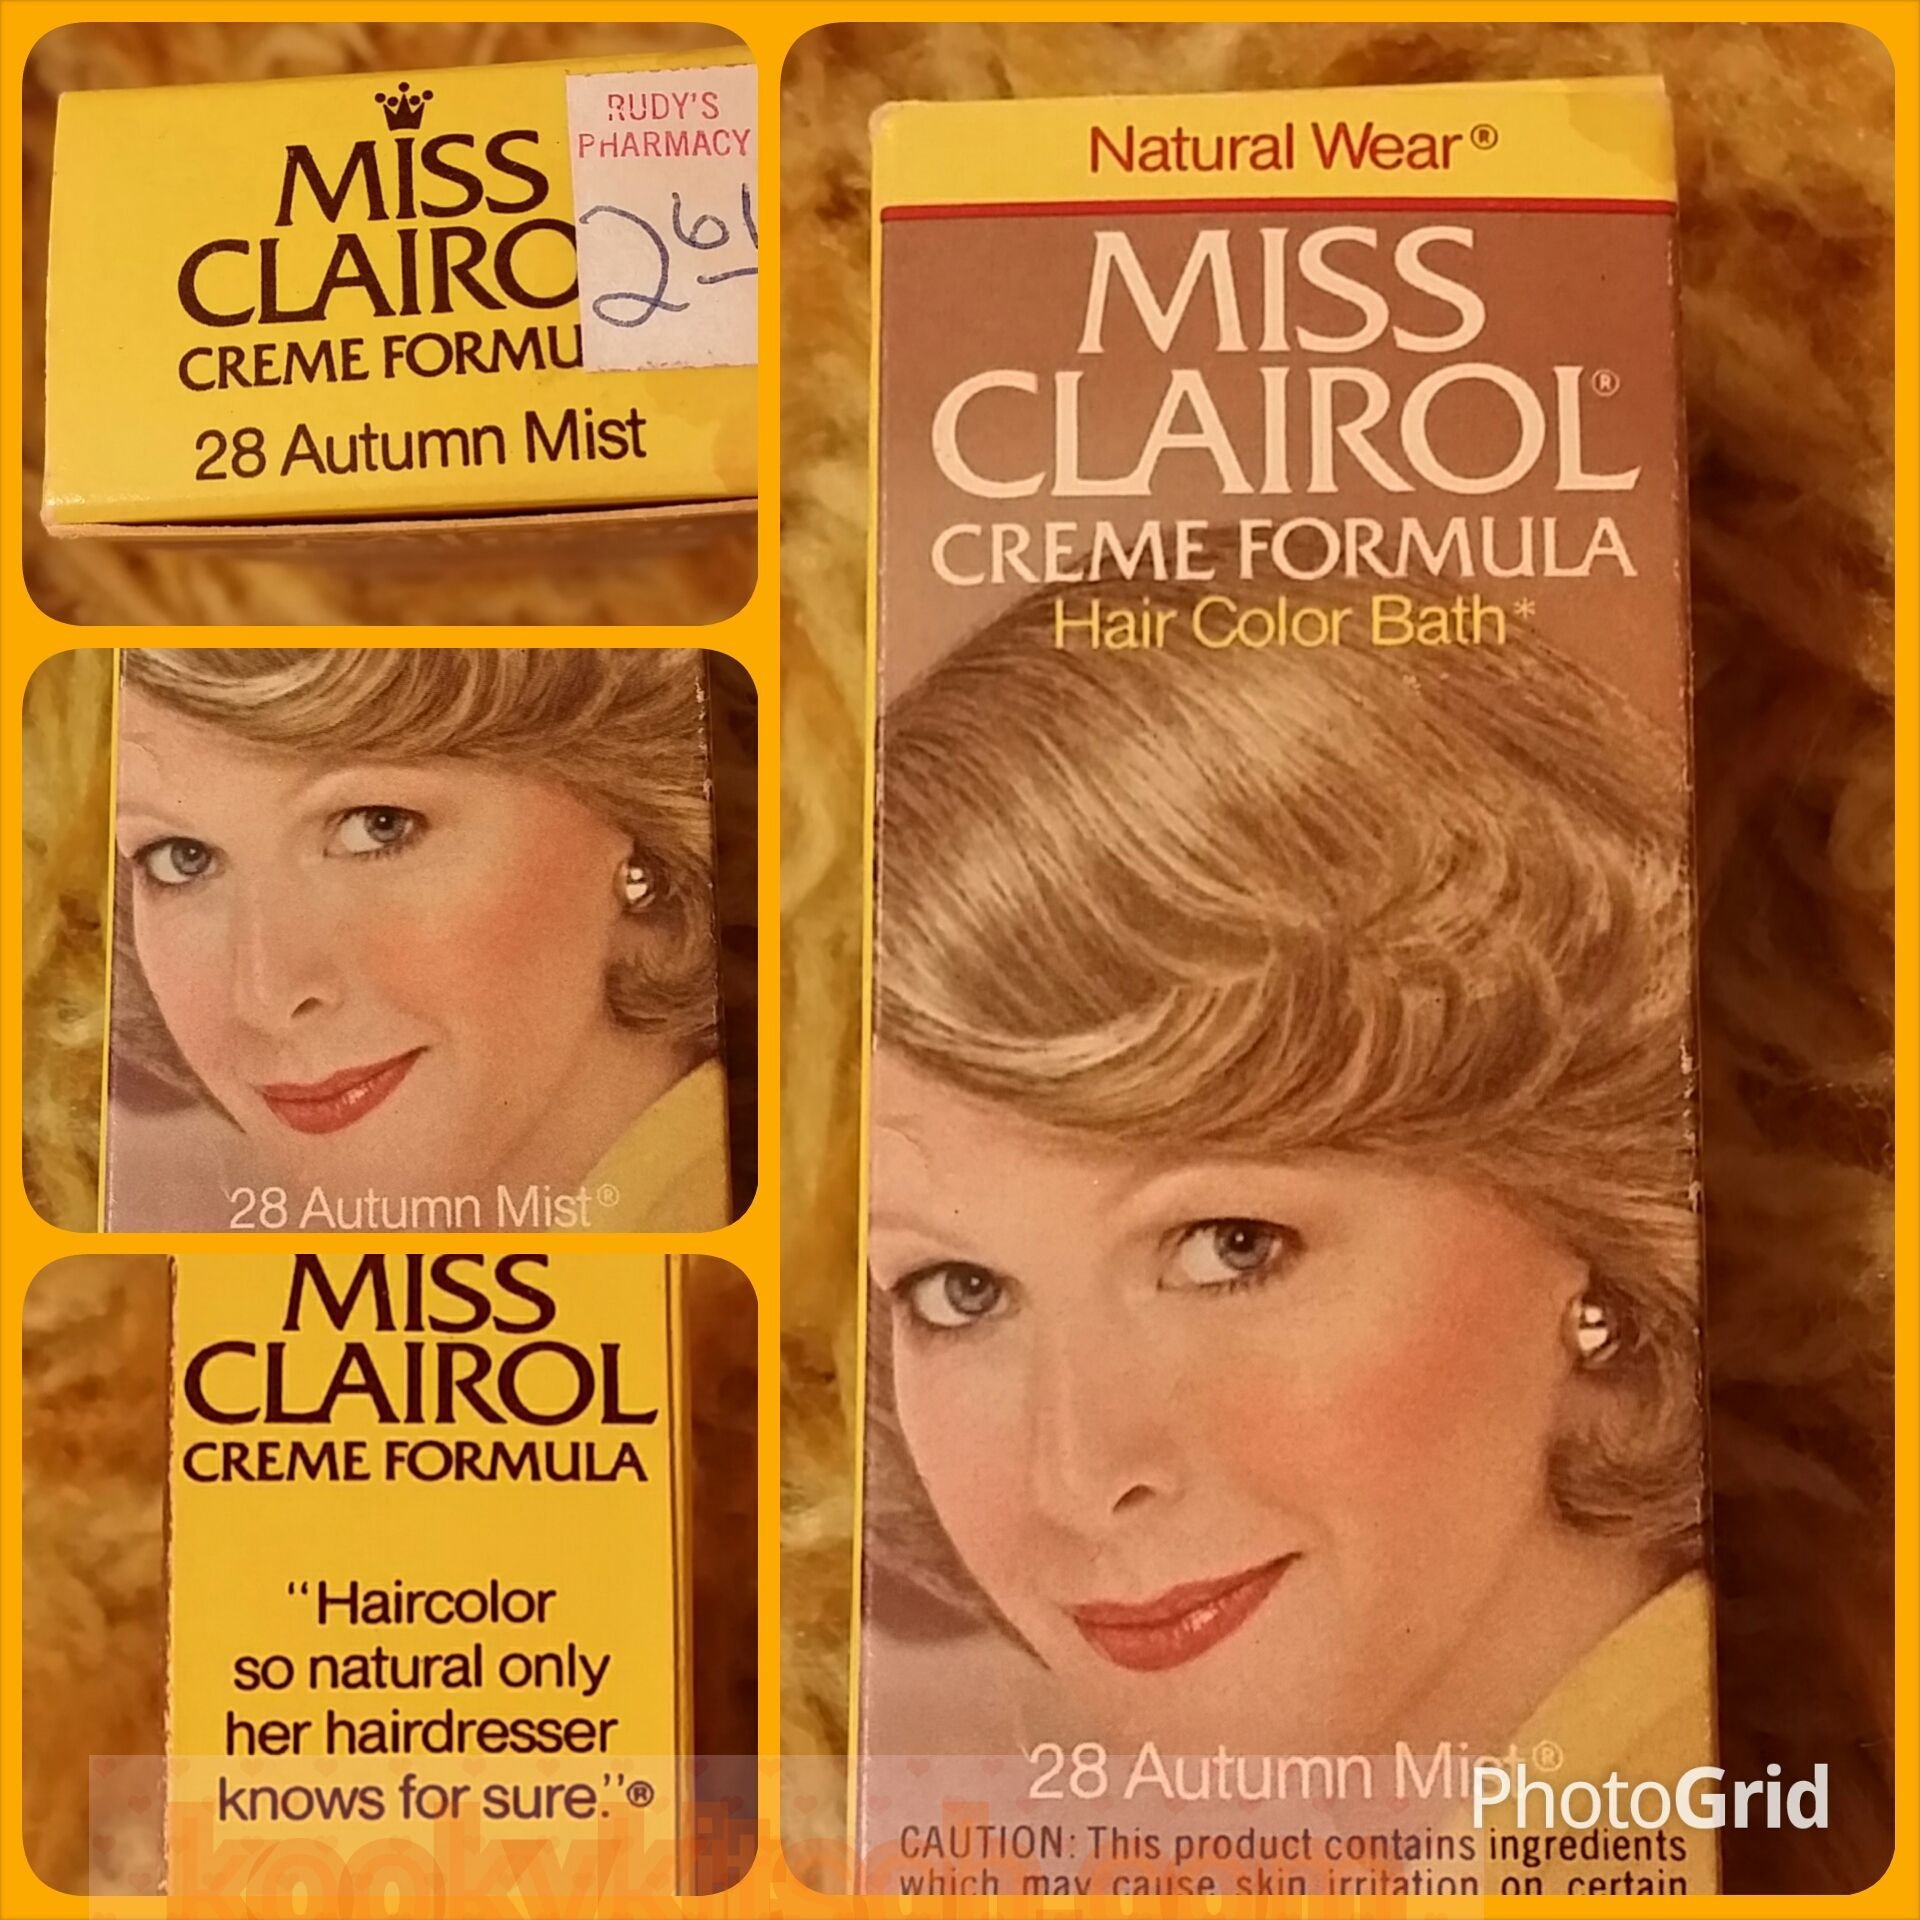 The Best Miss Clairol Creme Formula 1976 Bottle And Box Natural Wear 28 Autumn Mist Hair Color Bath Rudy Pictures